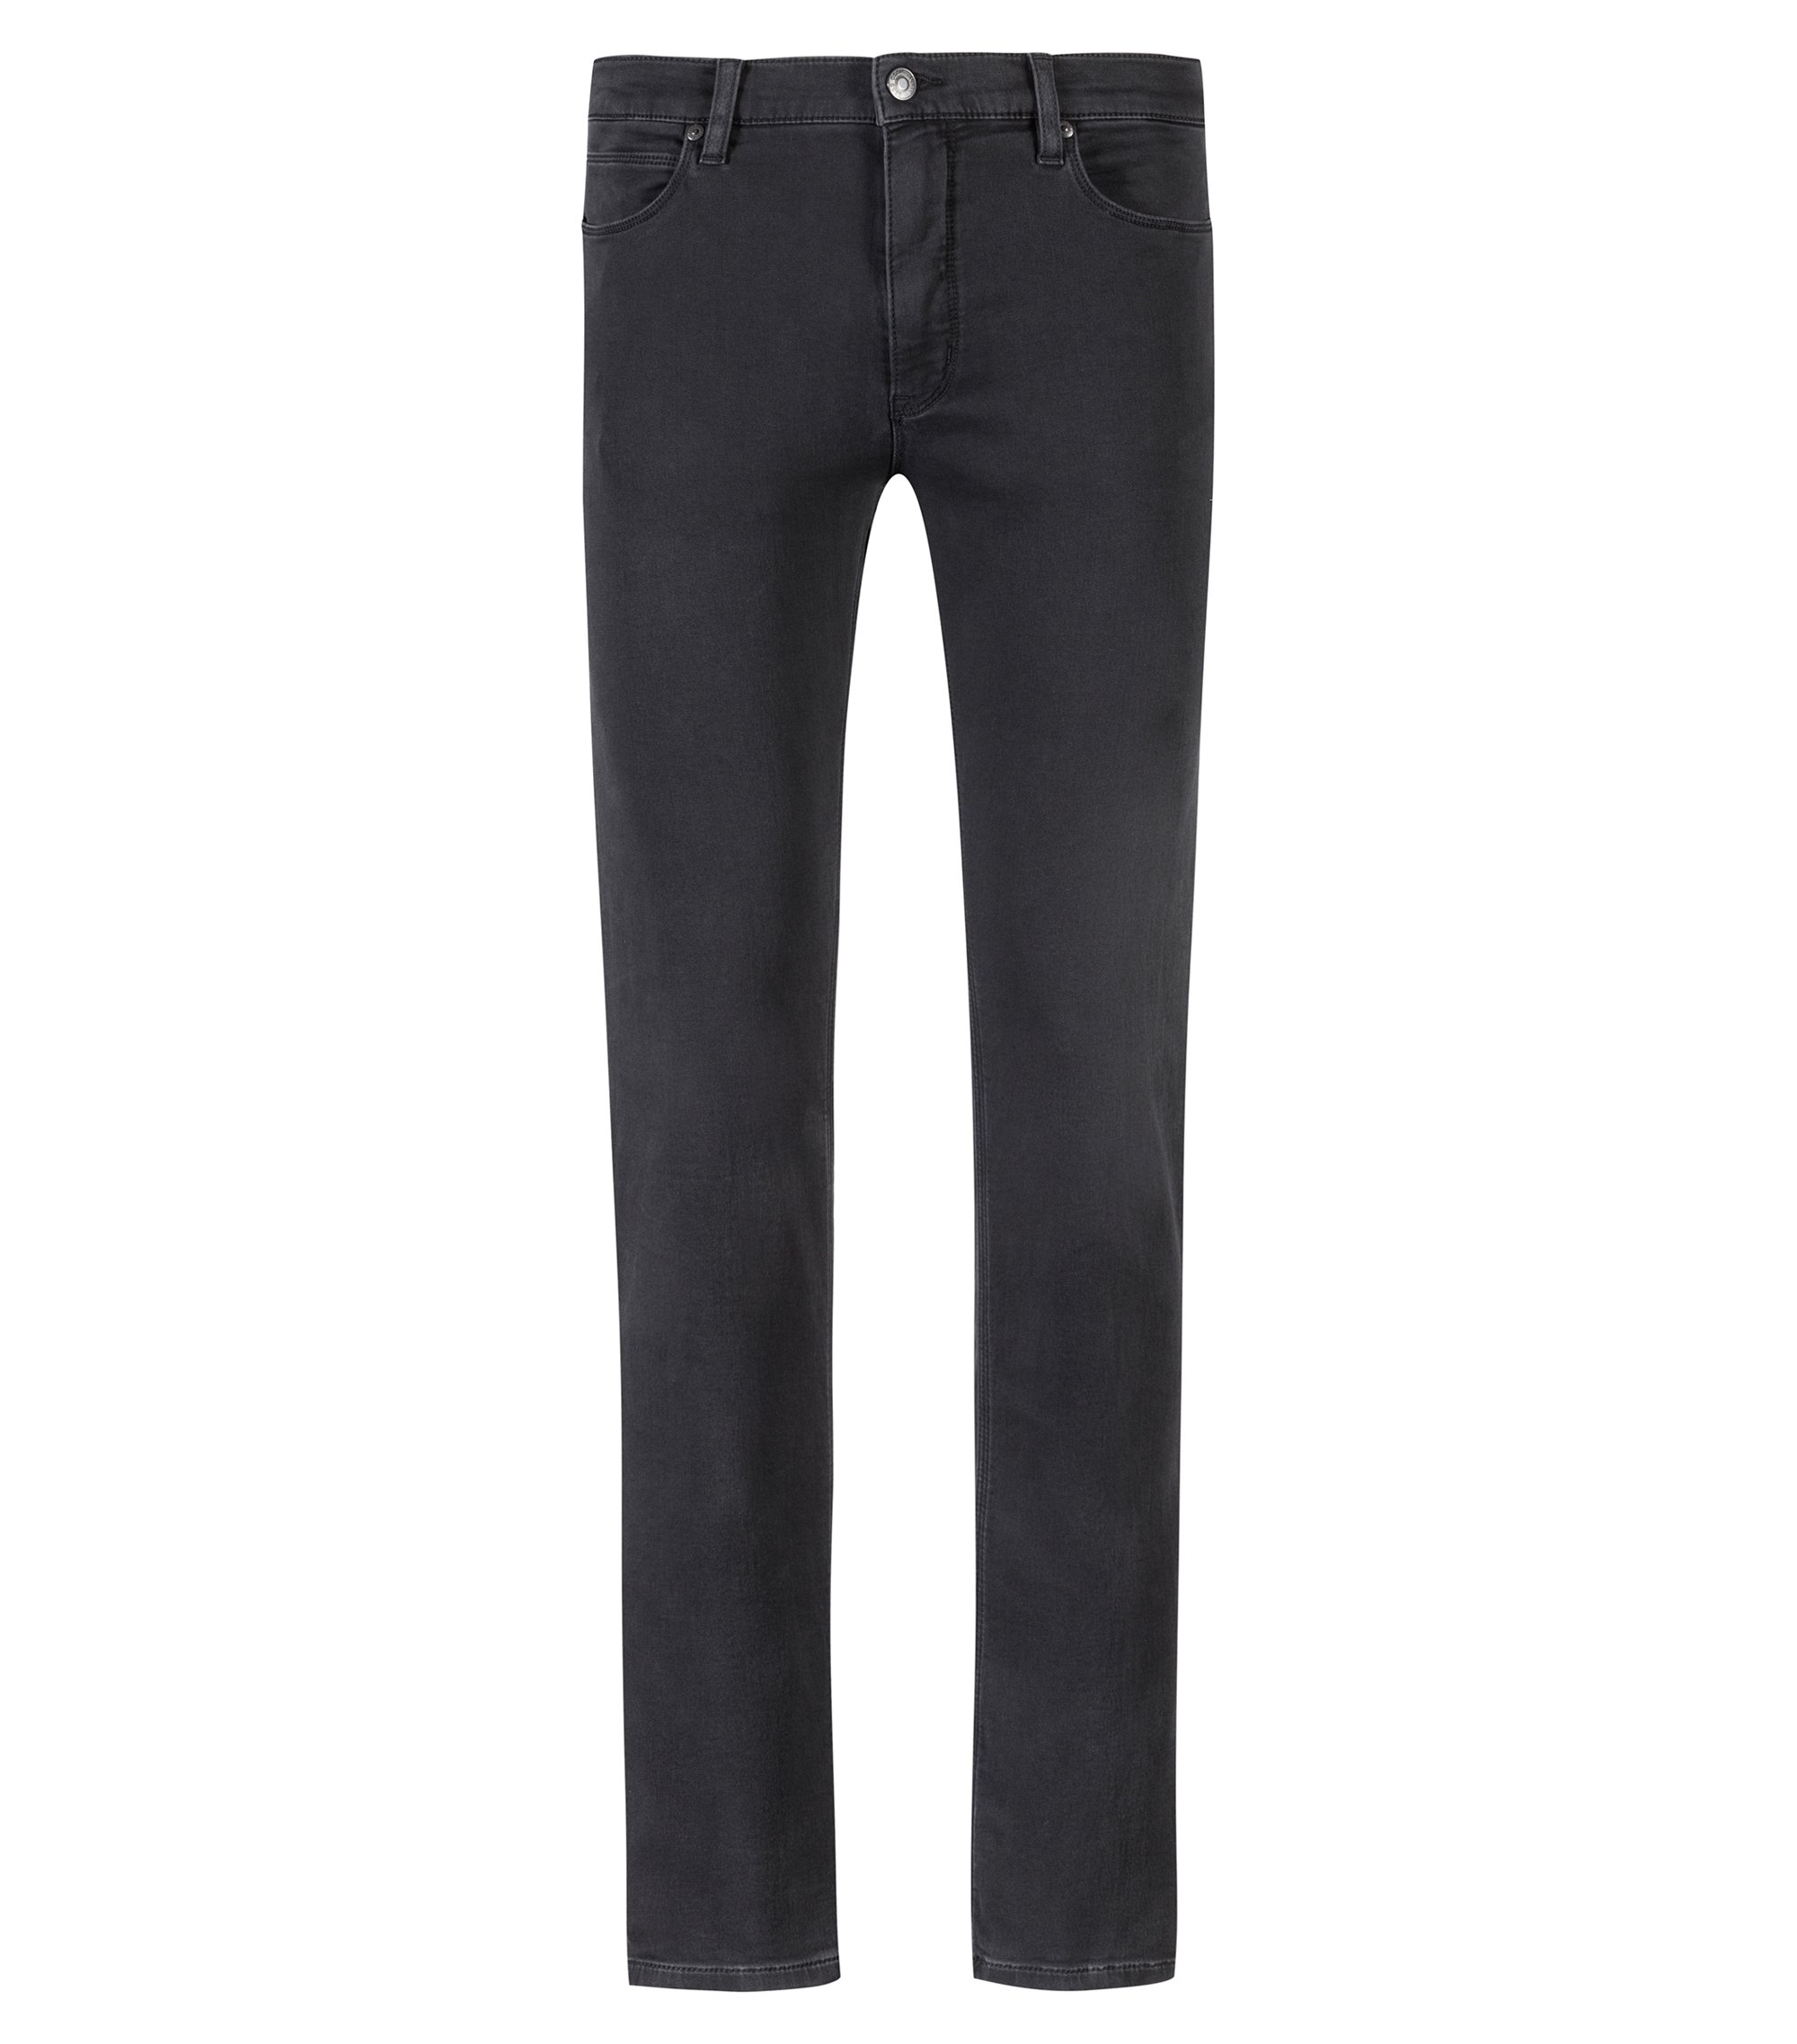 Skinny-fit jeans in charcoal stretch denim, Charcoal